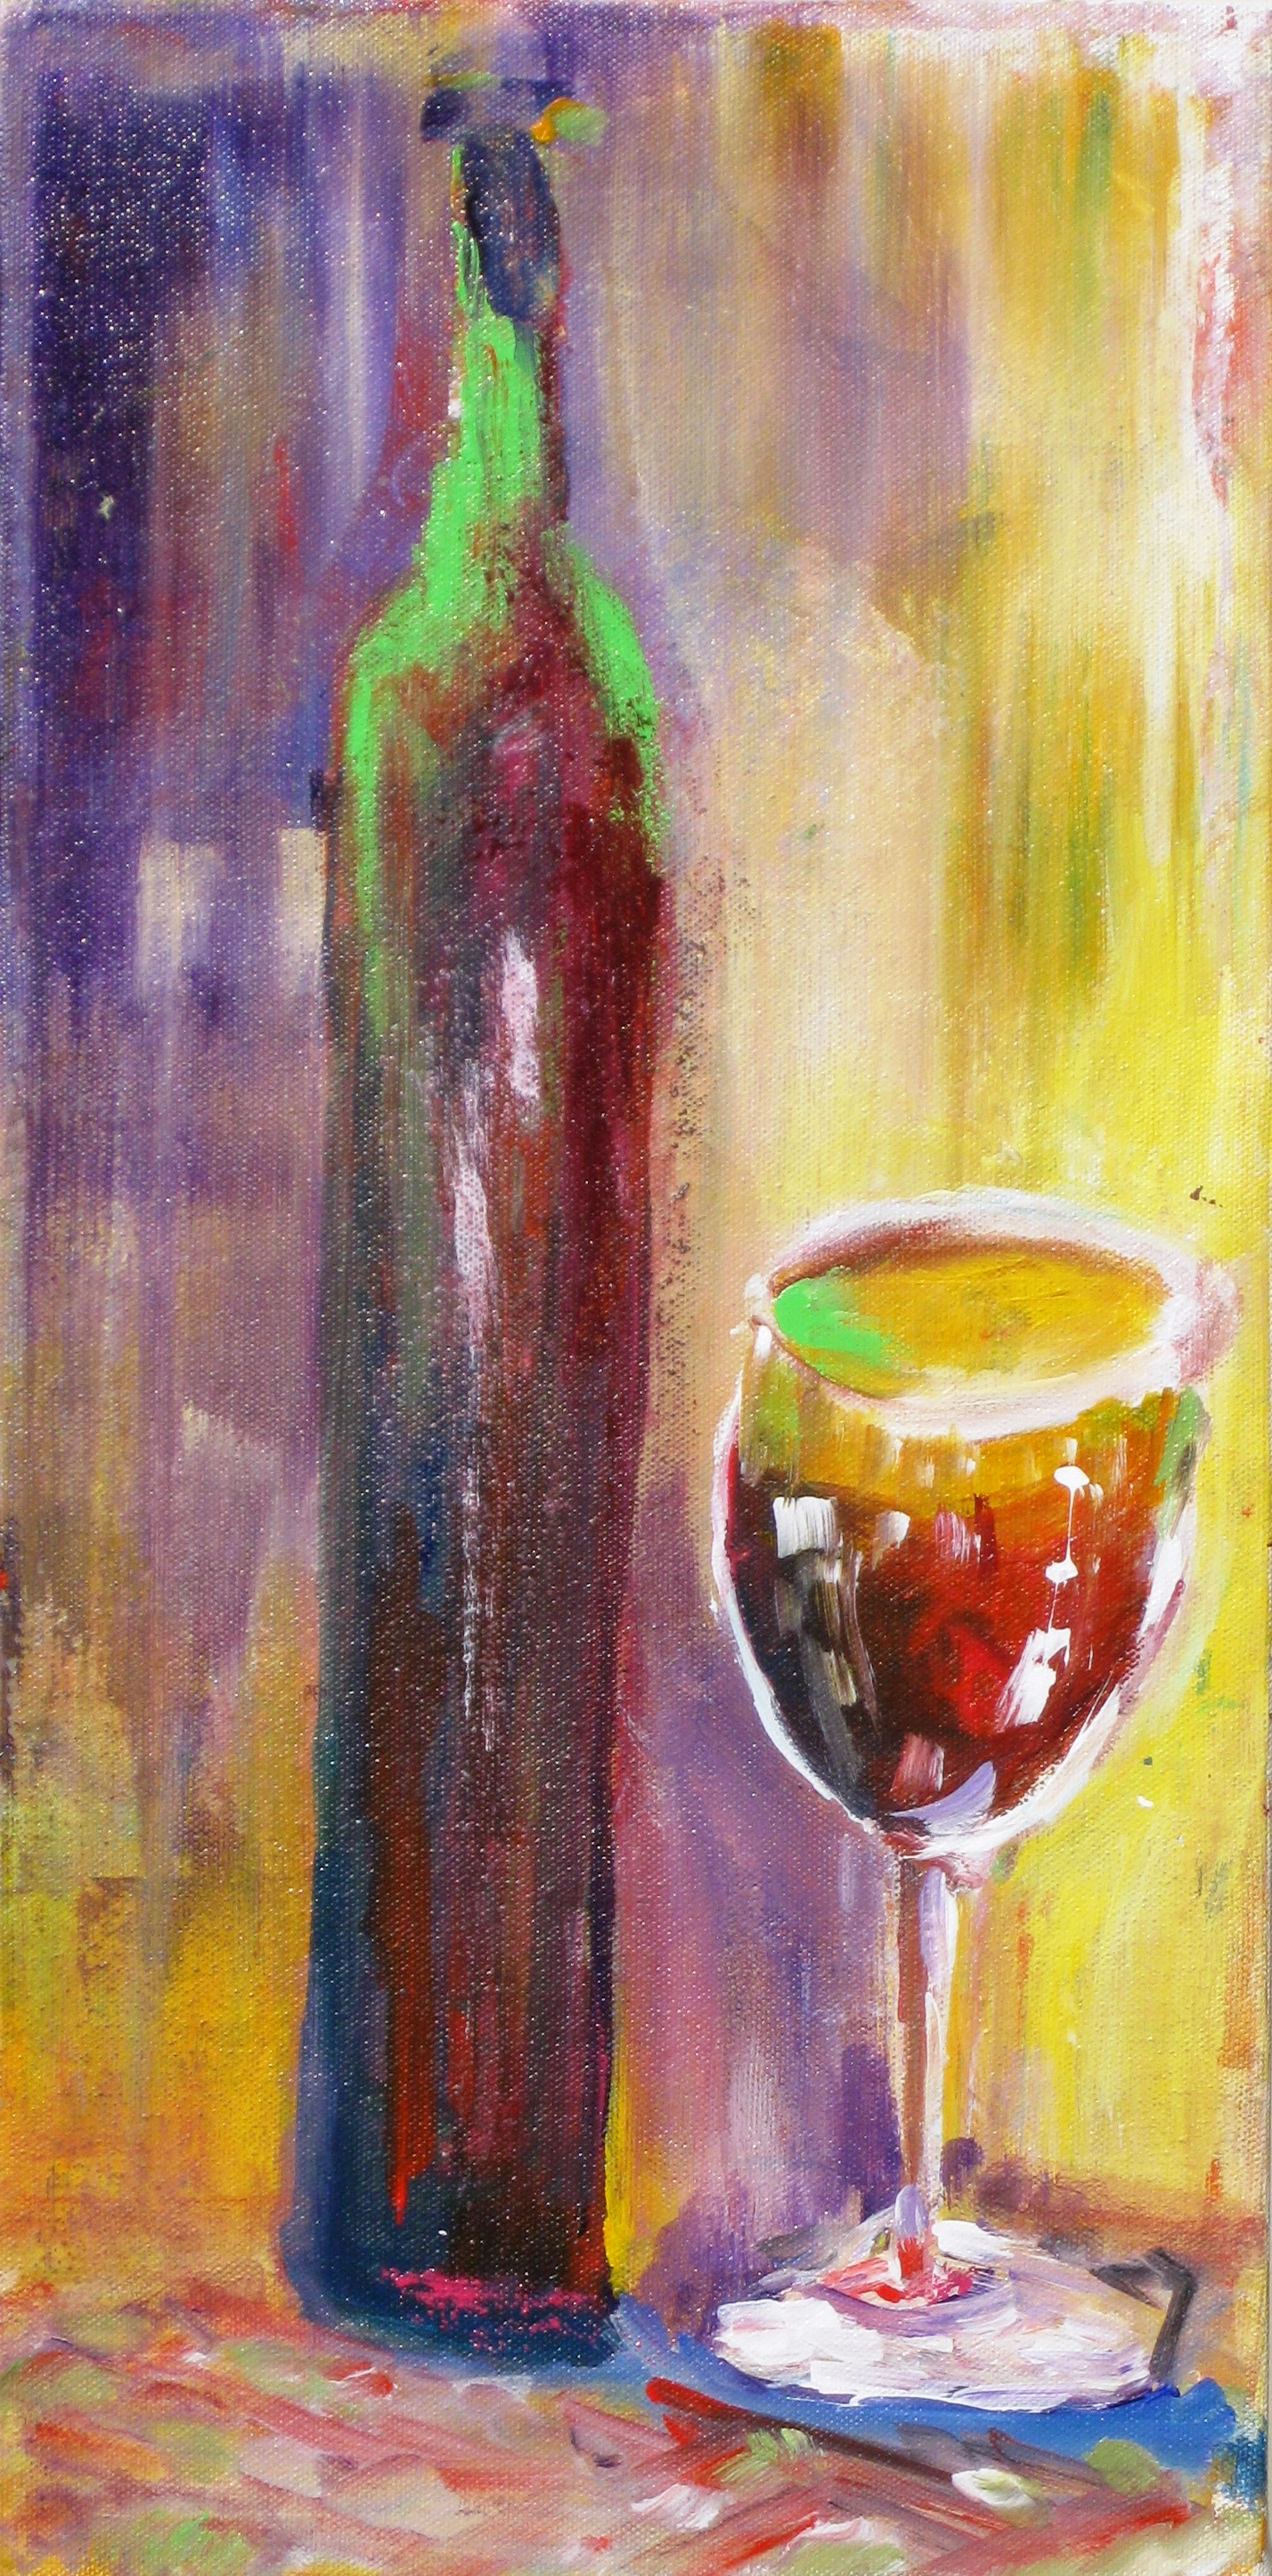 New paintings wine bottle and glass art by dawn corner for How to paint bottles with acrylic